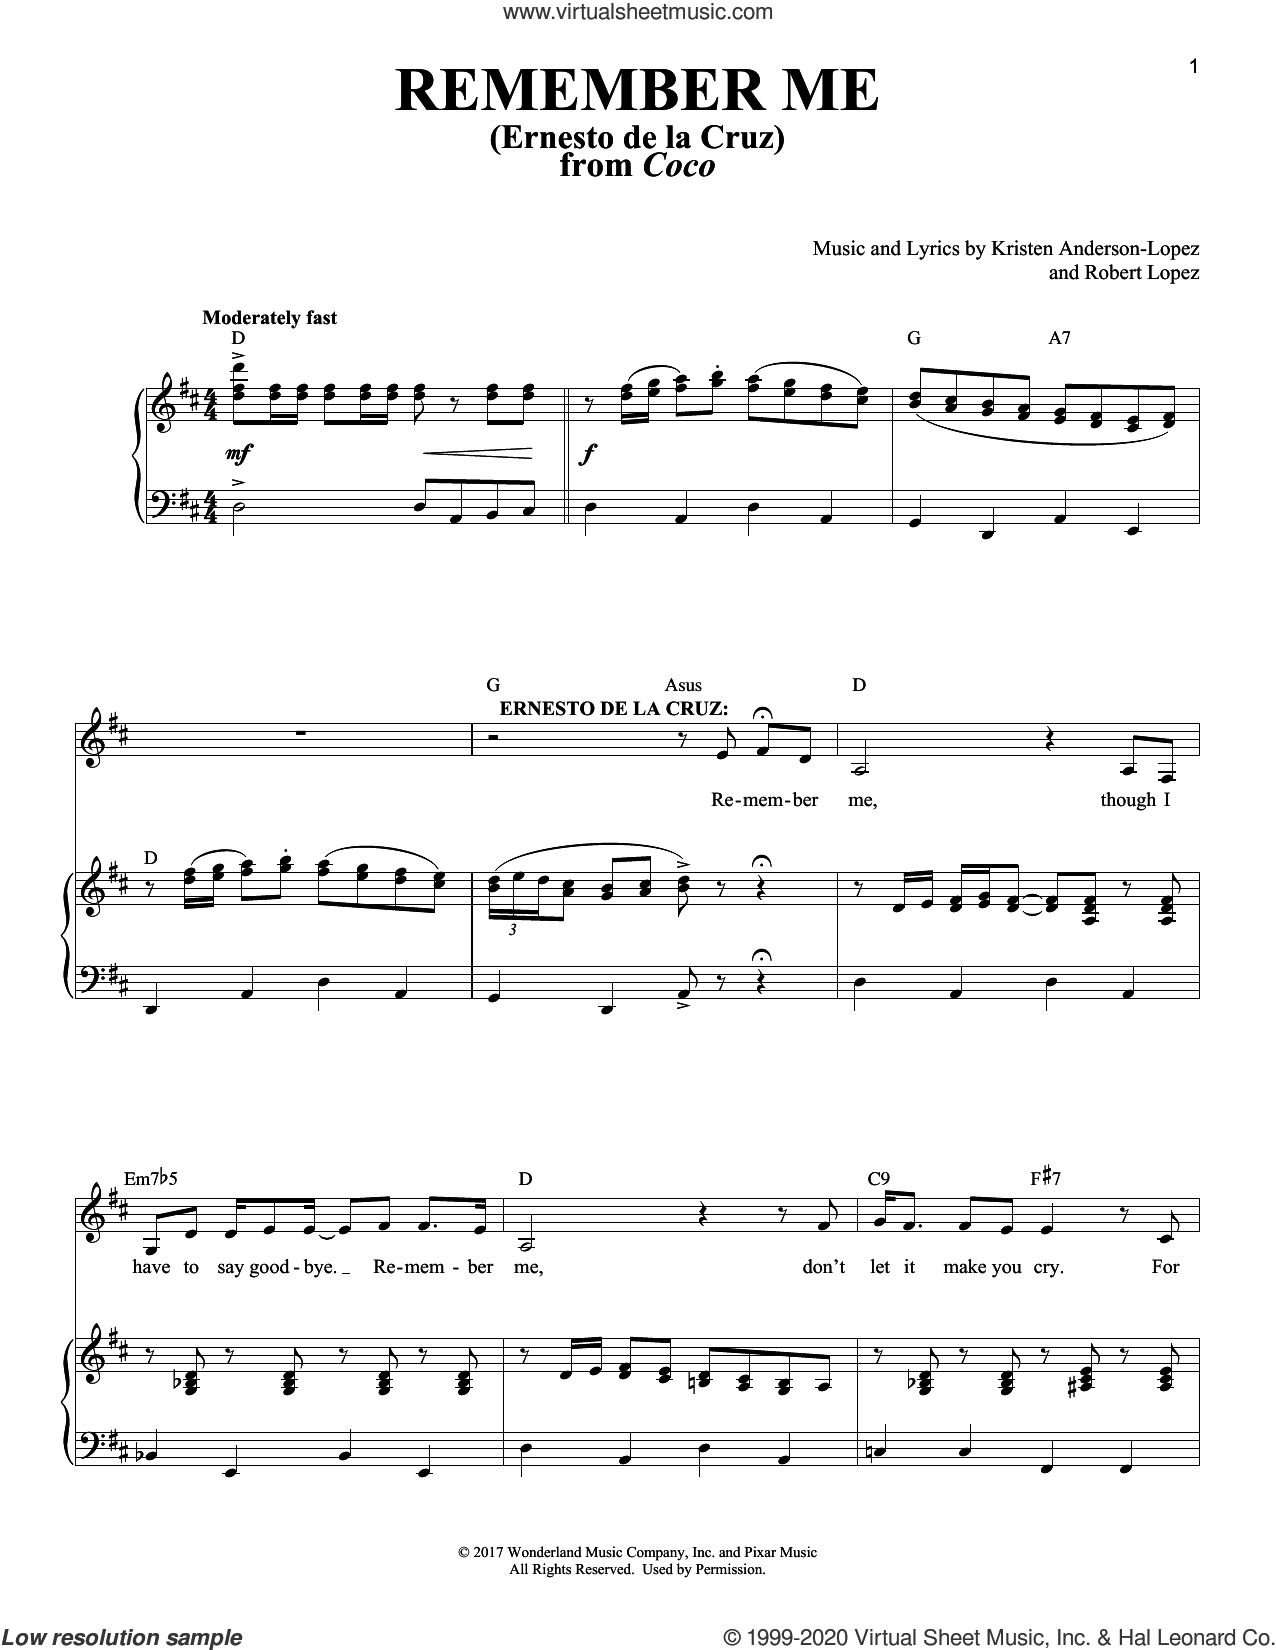 Remember Me (Ernesto de la Cruz) (from Coco) sheet music for voice and piano by Robert Lopez, Kristen Anderson-Lopez and Kristen Anderson-Lopez & Robert Lopez, intermediate skill level